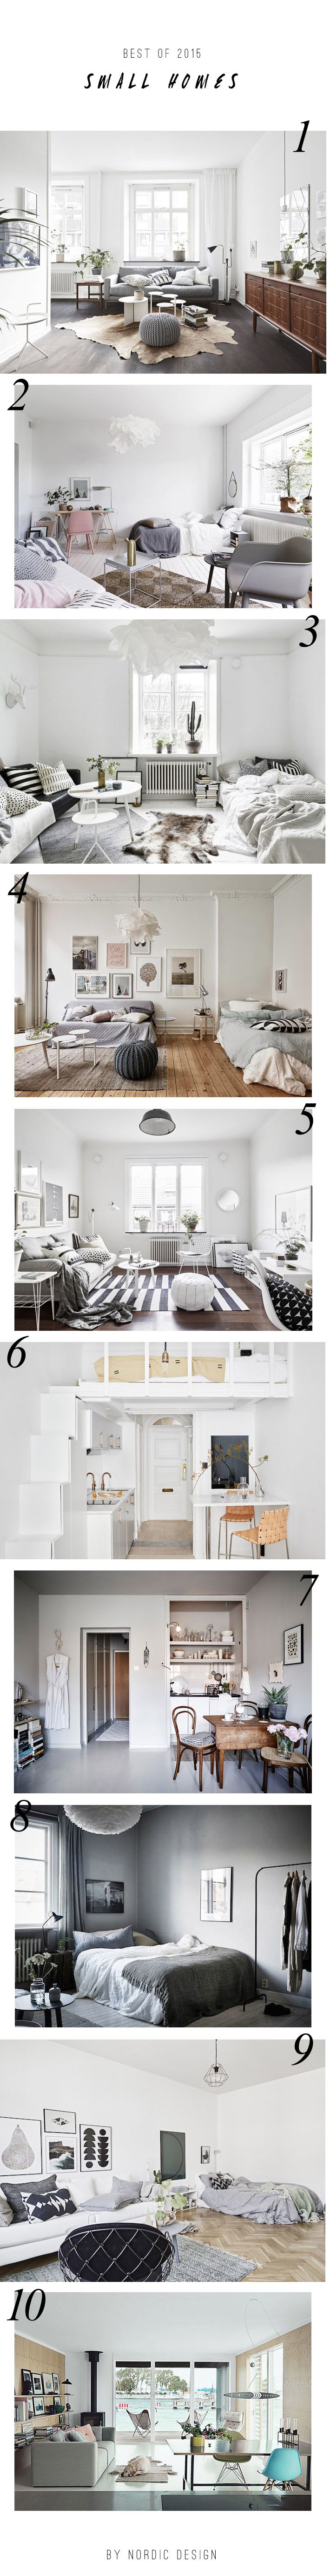 10 beautiful small homes styled the Scandinavian way   Best of 2015 - Nordic Design